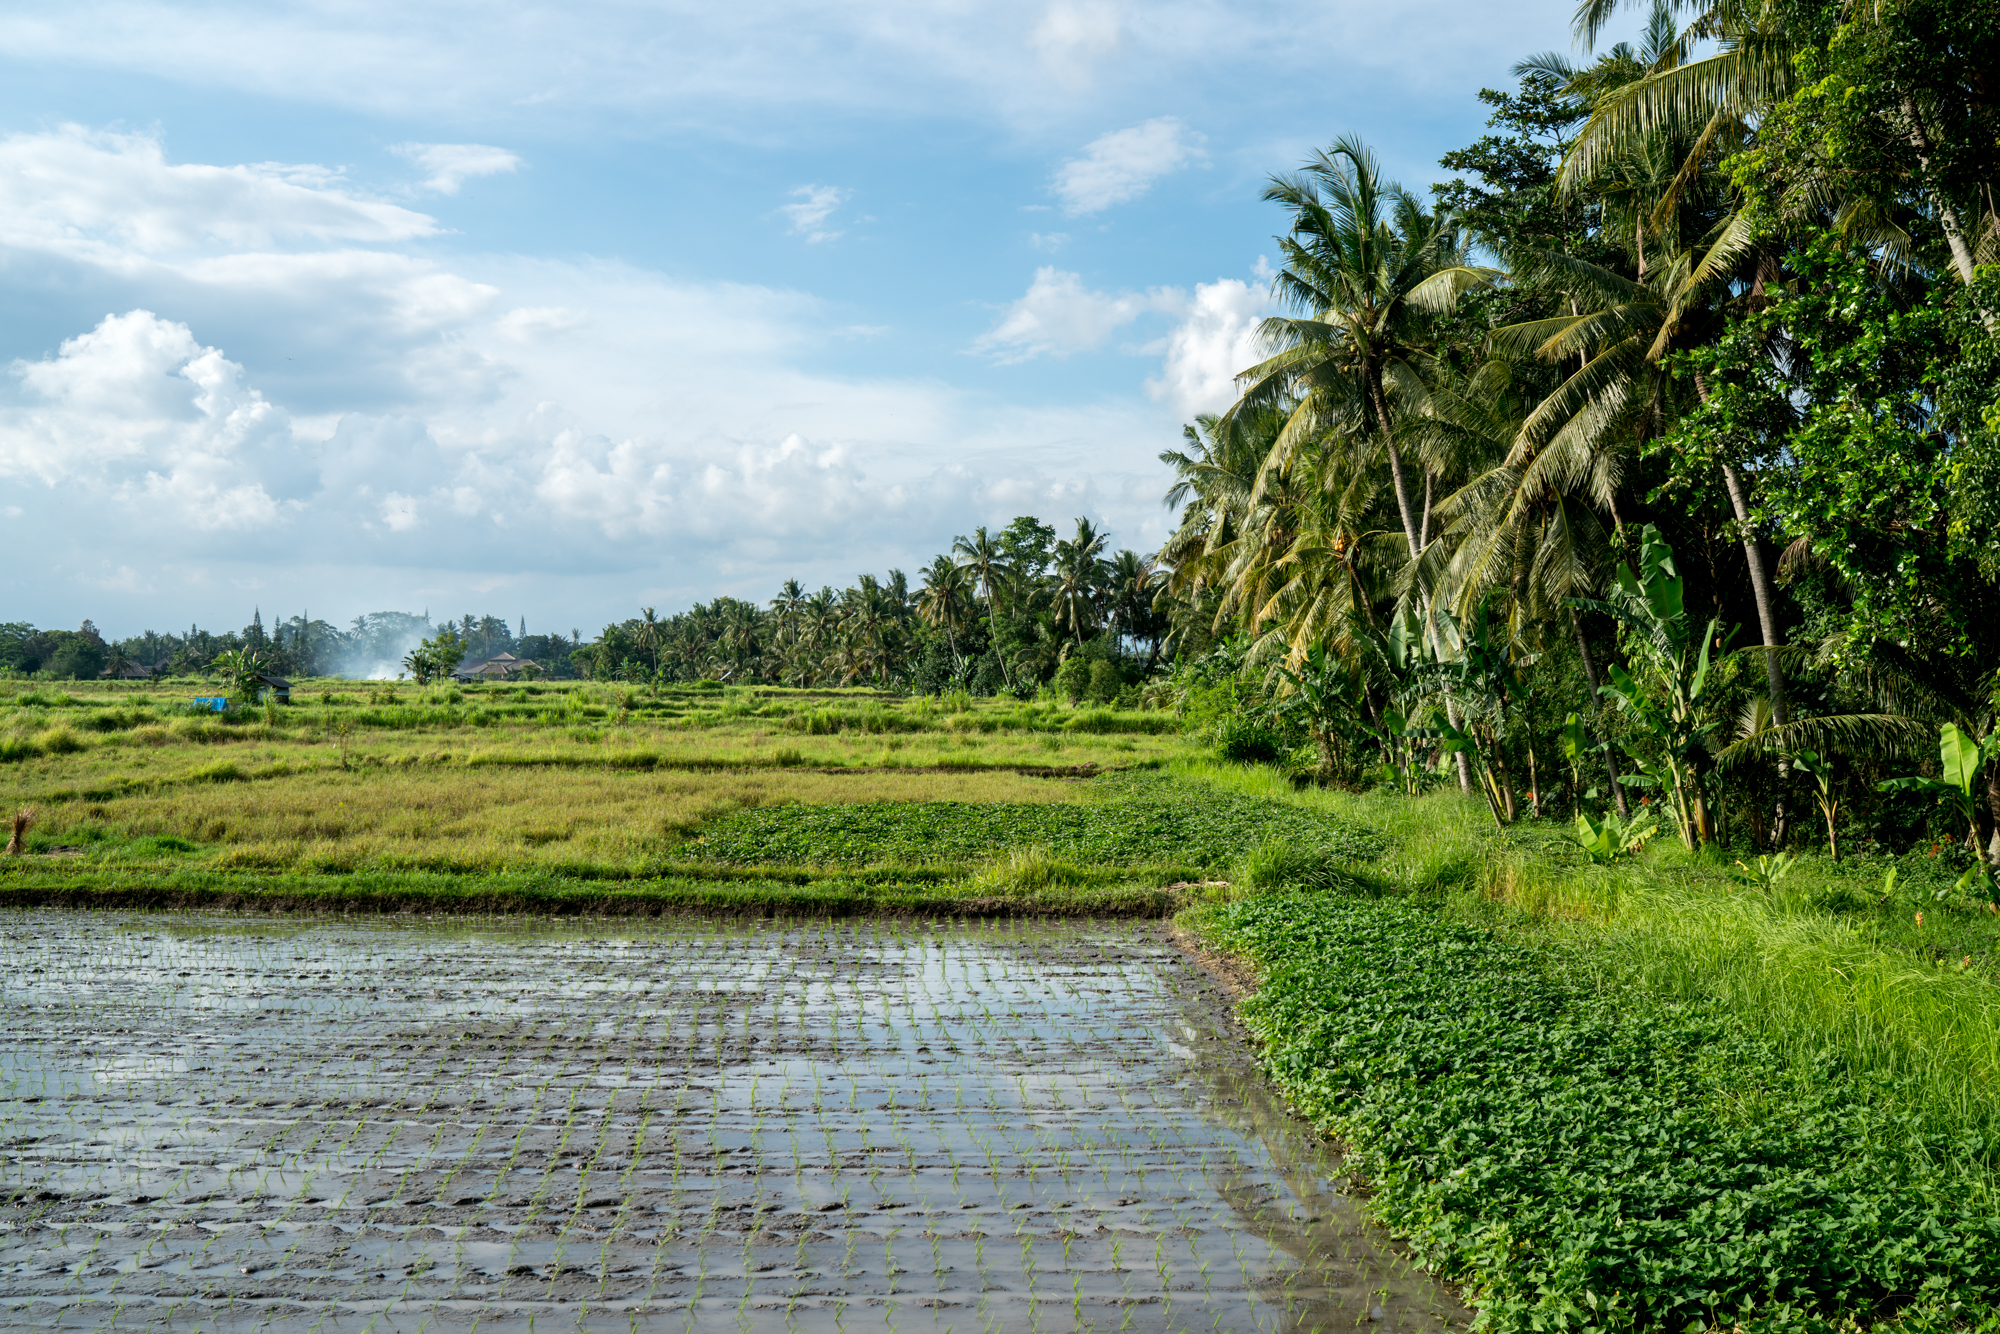 Bali Rice Fields | Never Settle Travel